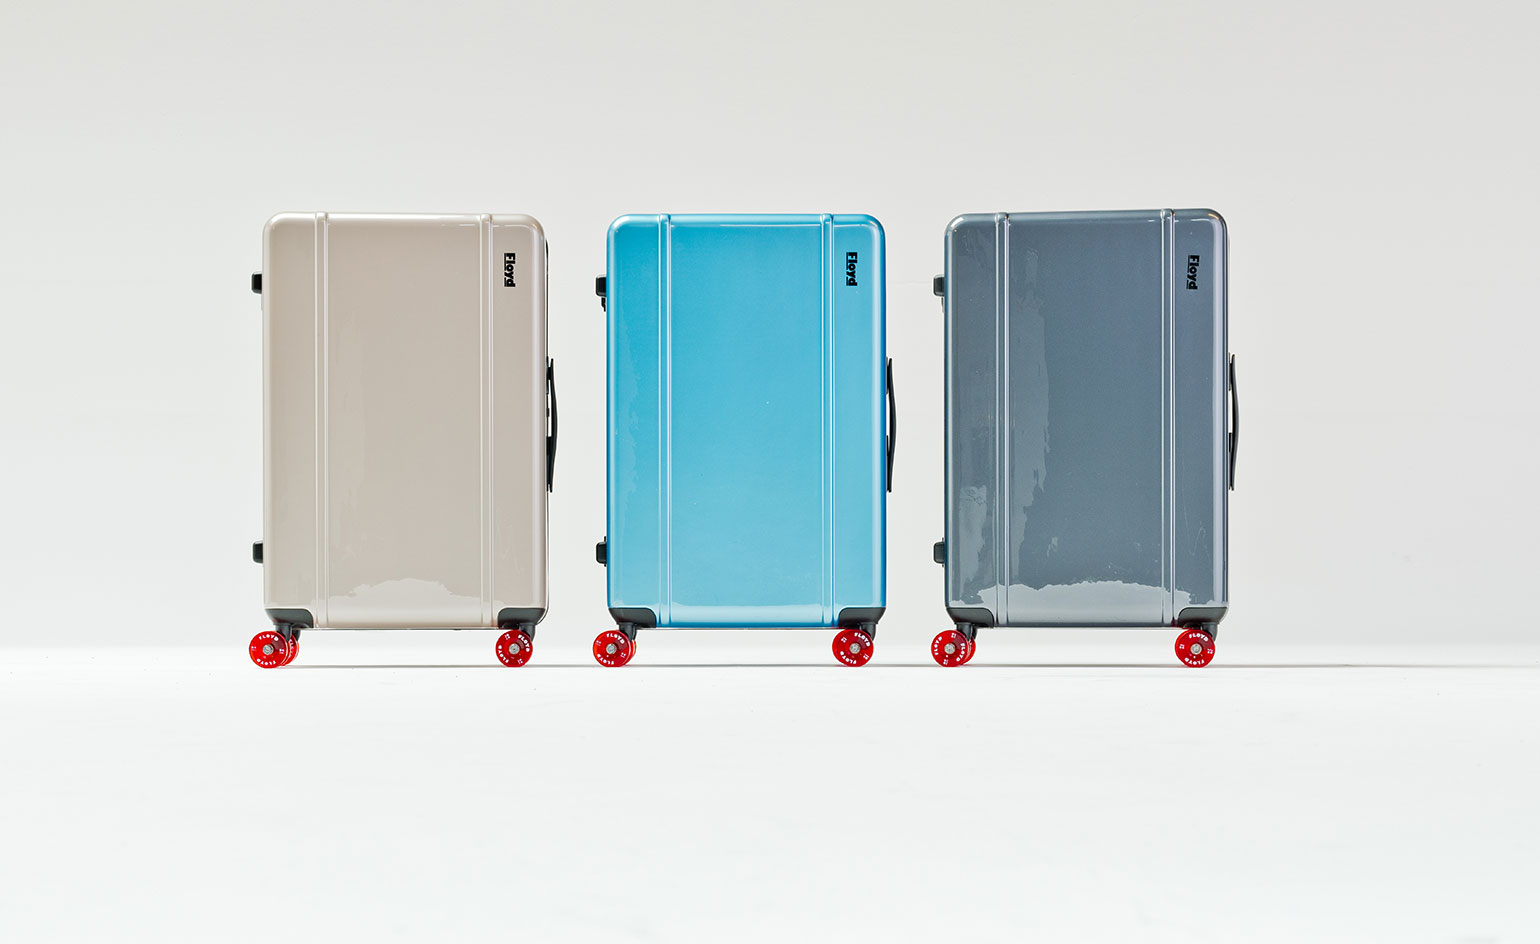 153d66d5a762 Luggage leaders: travel companions to get carried away with | Wallpaper*